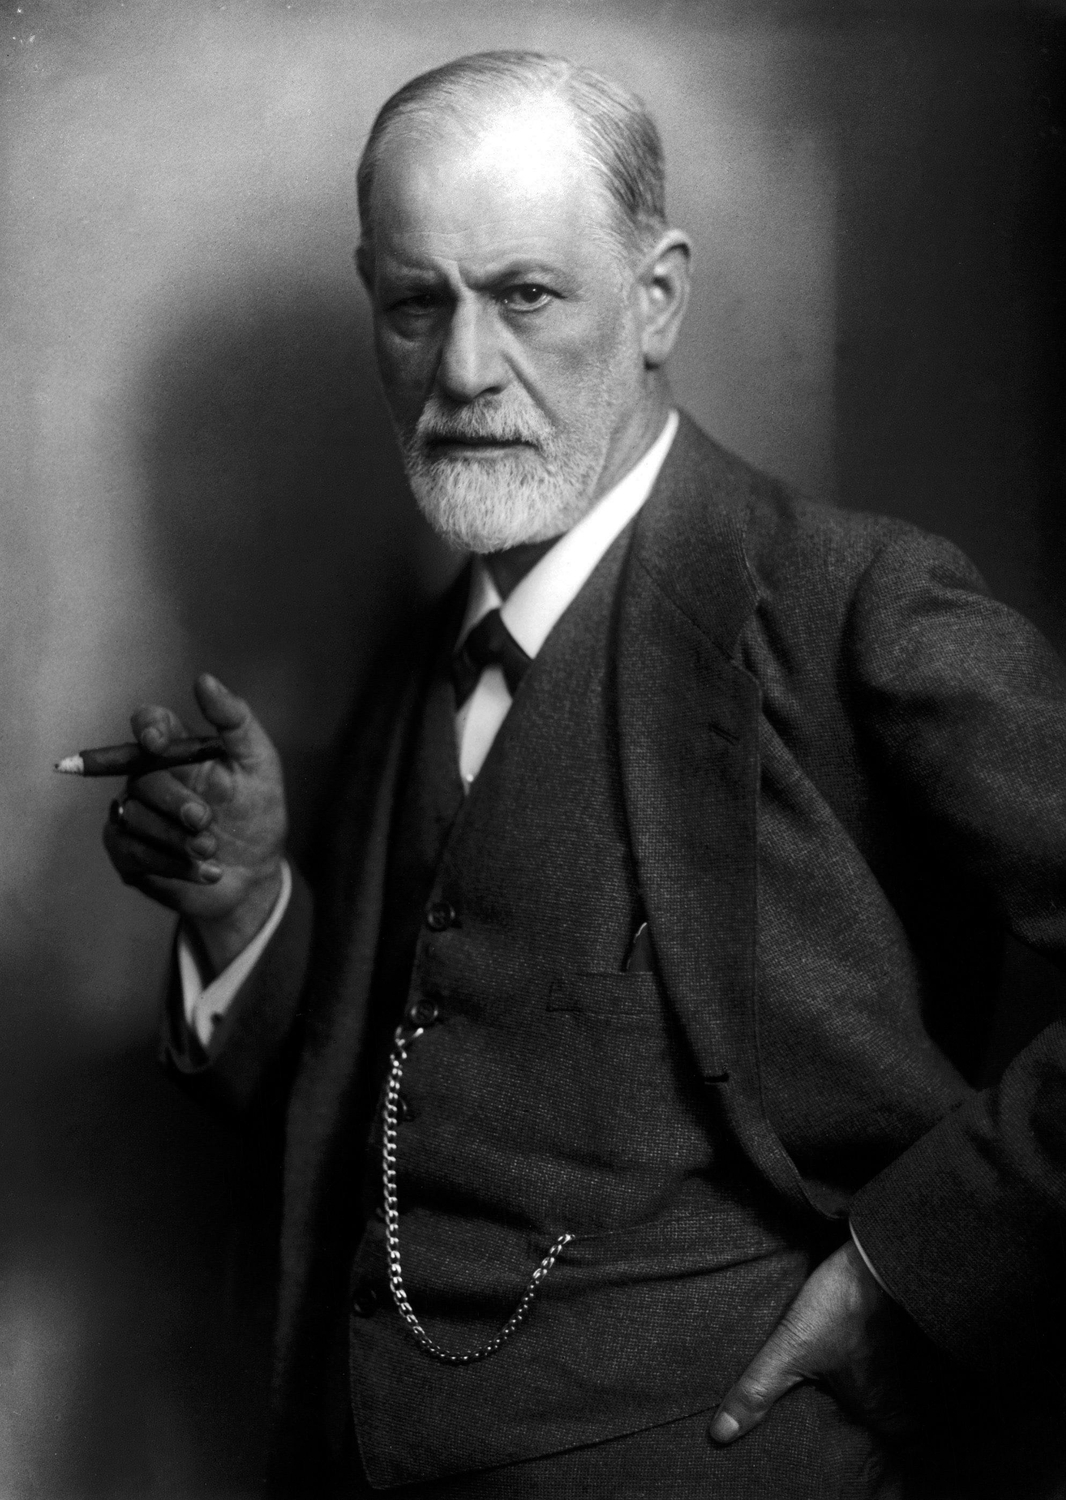 Freud with Cigar